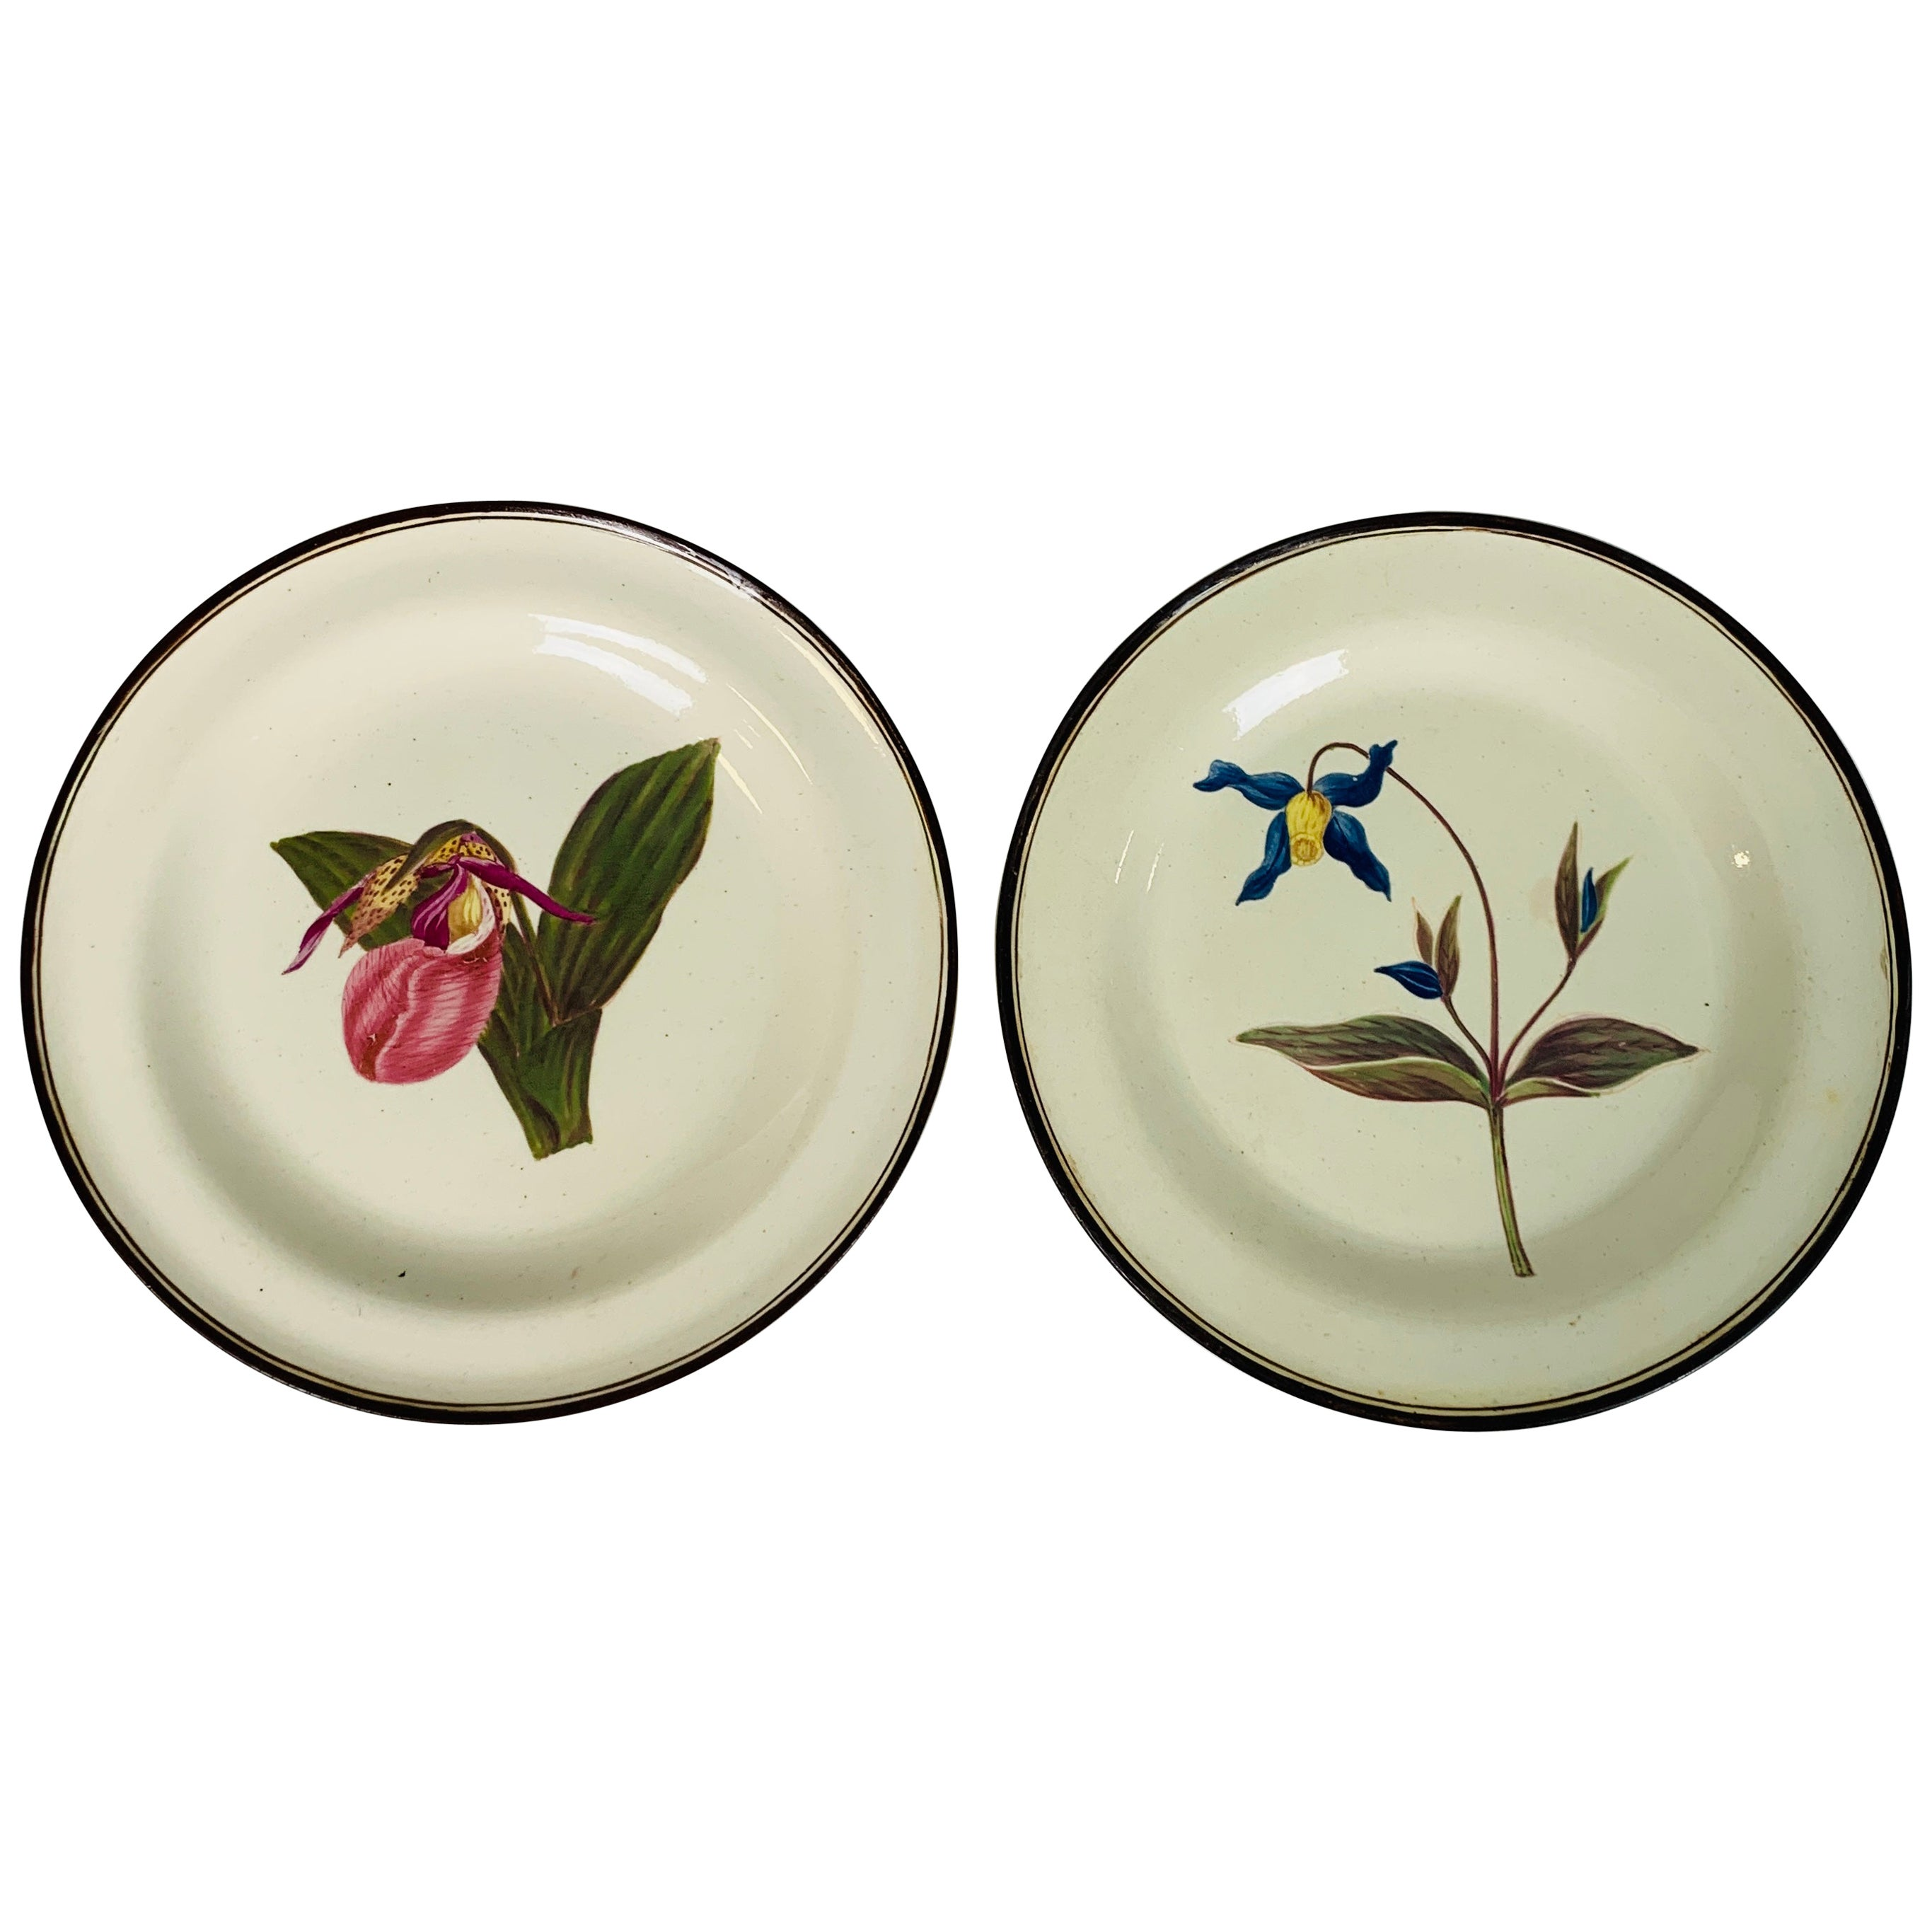 From the Collection of Mario Buatta Pair of Botanical Dishes Creamware